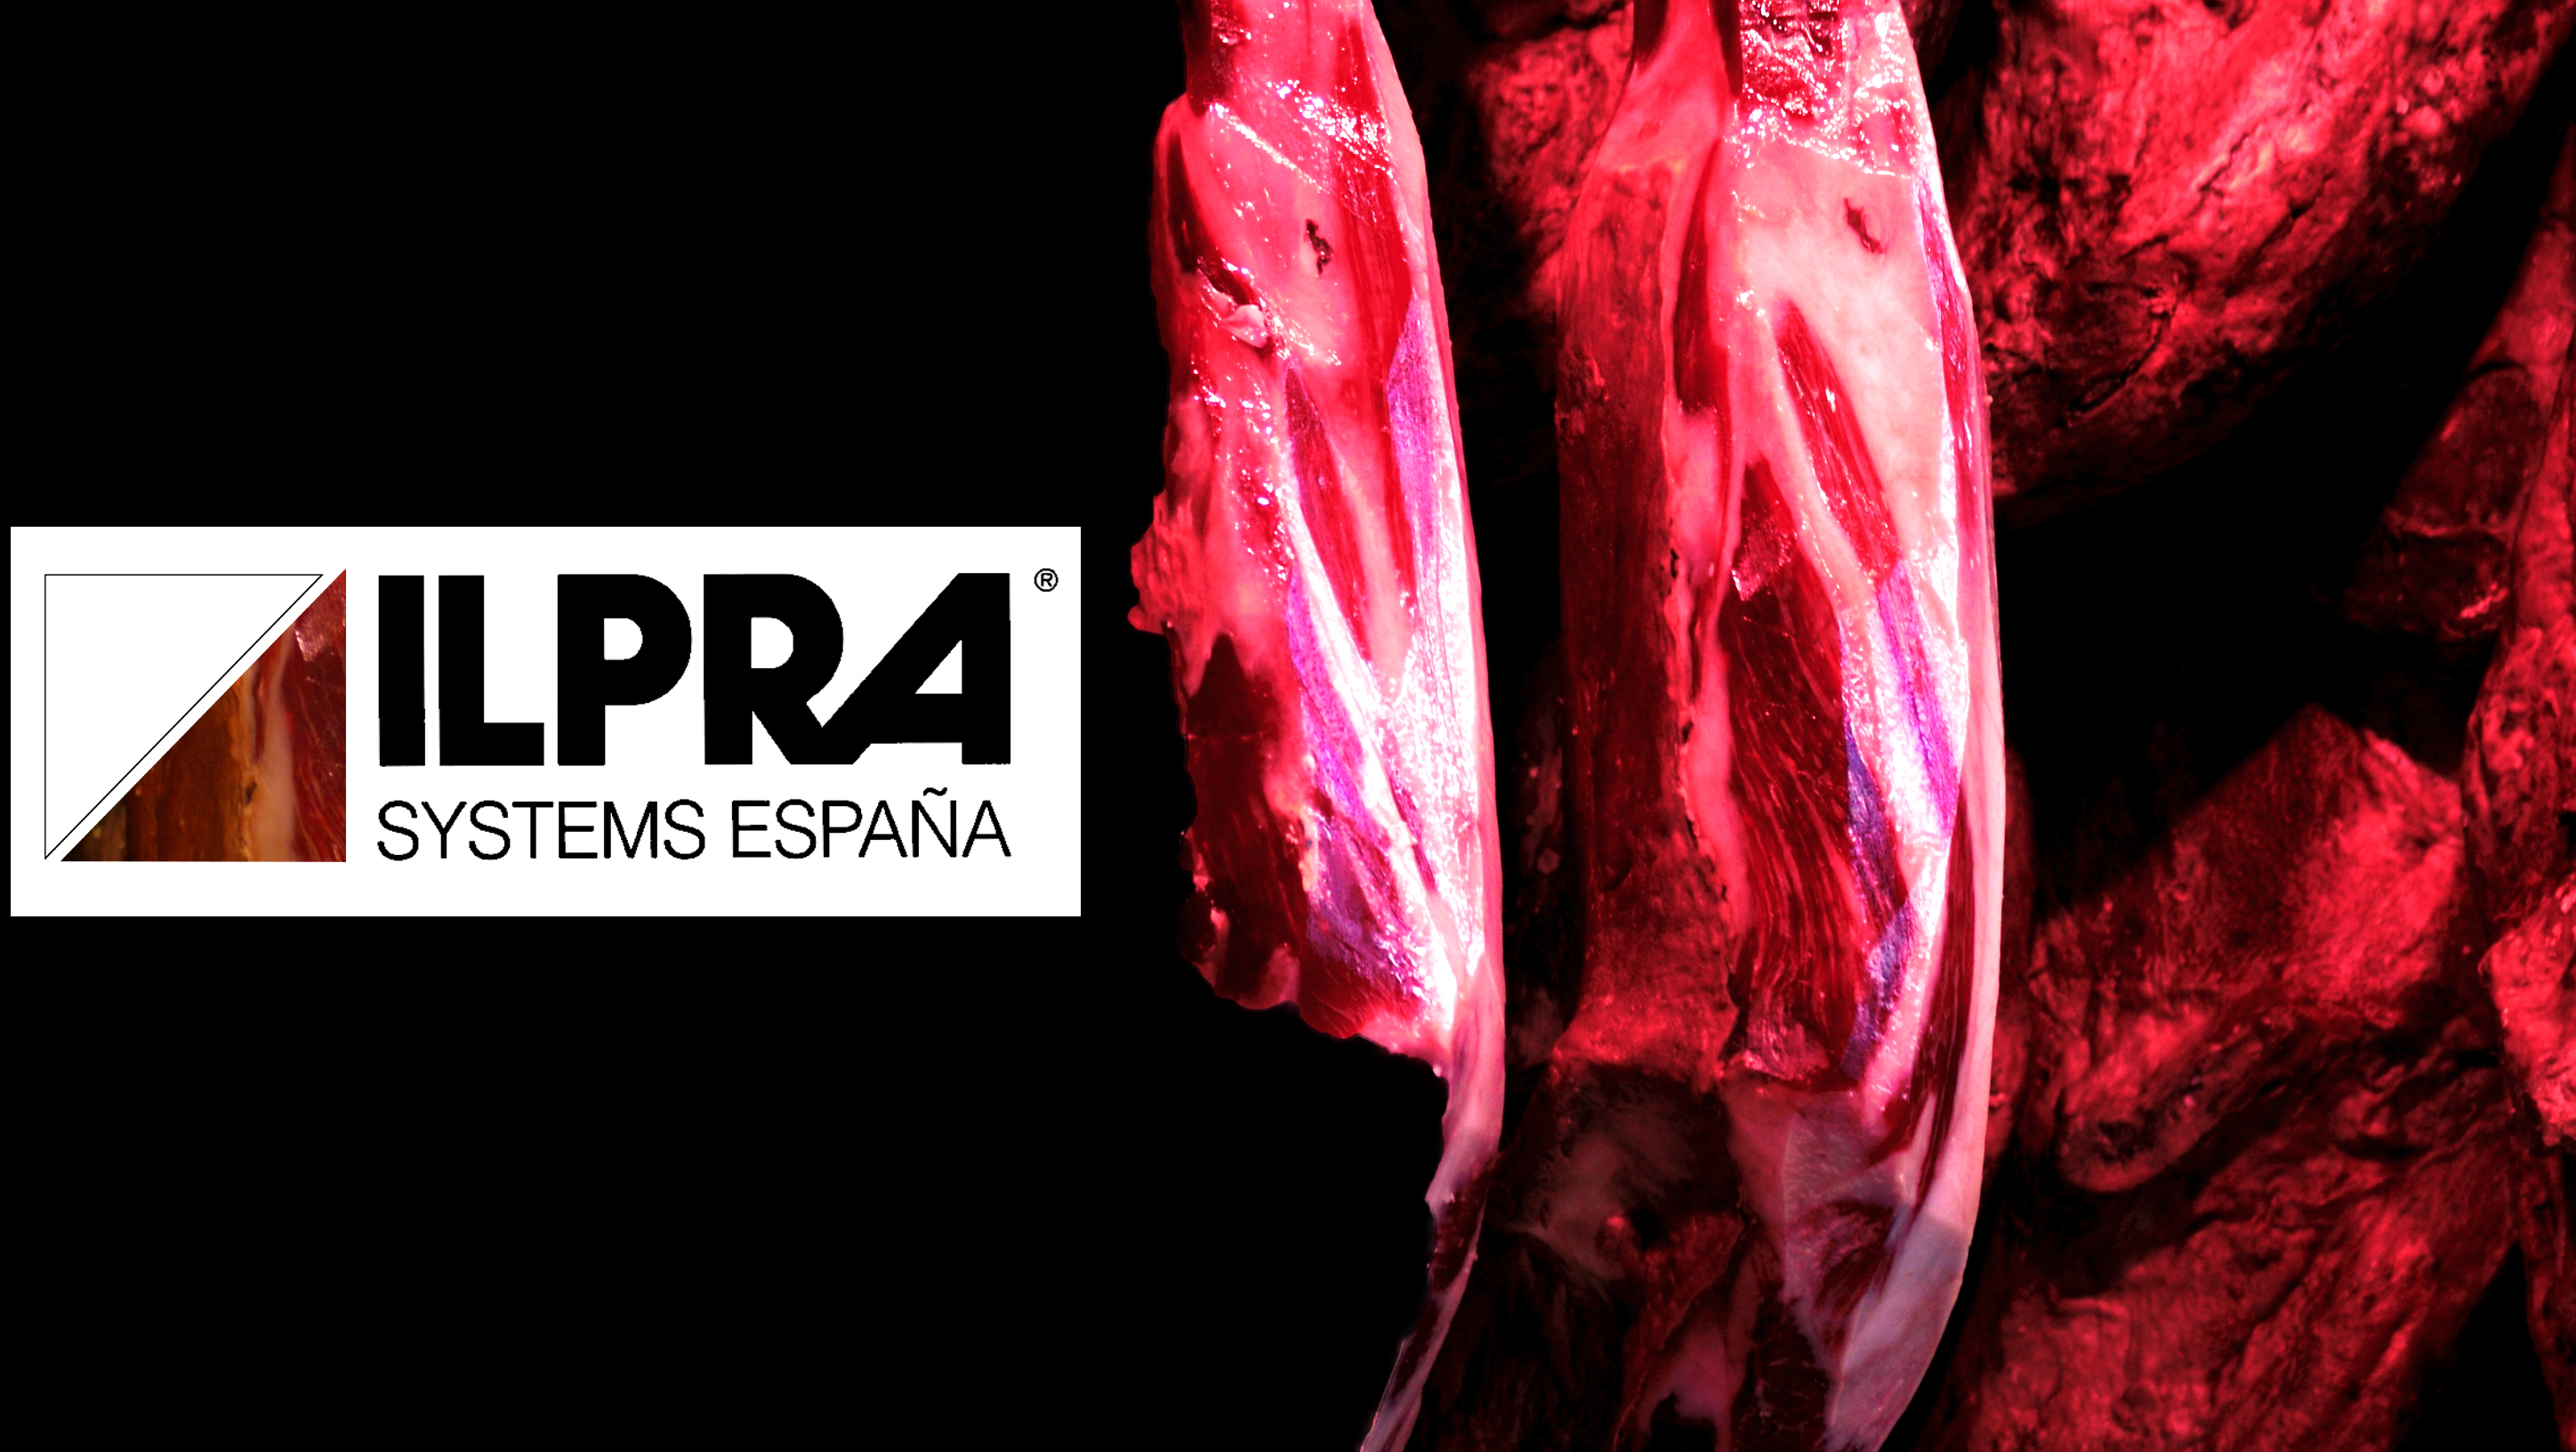 ILPRA ESTARÁ EN MEAT ATTRACTION 2019